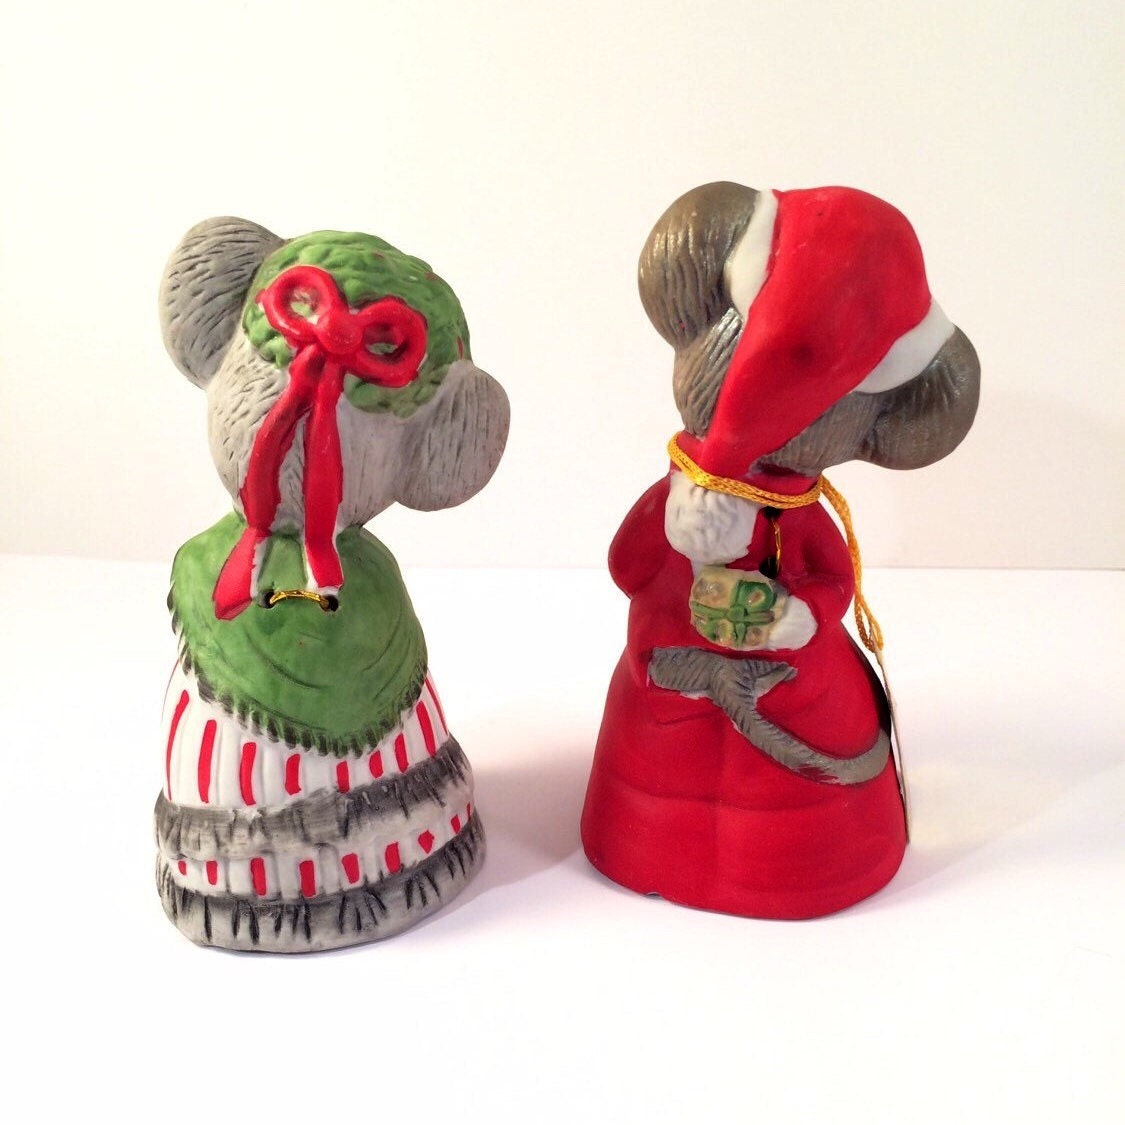 Vintage Christmas Decorations Mouse Carolers Set Jasco: Christmas Critter Bells Mr. And Mrs. Mouse Set By VintageVybe